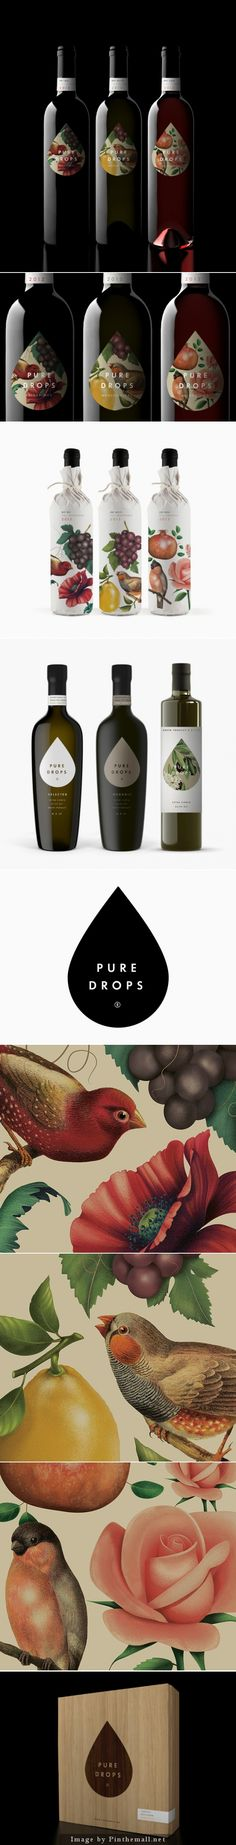 Pure Drops Packaging.